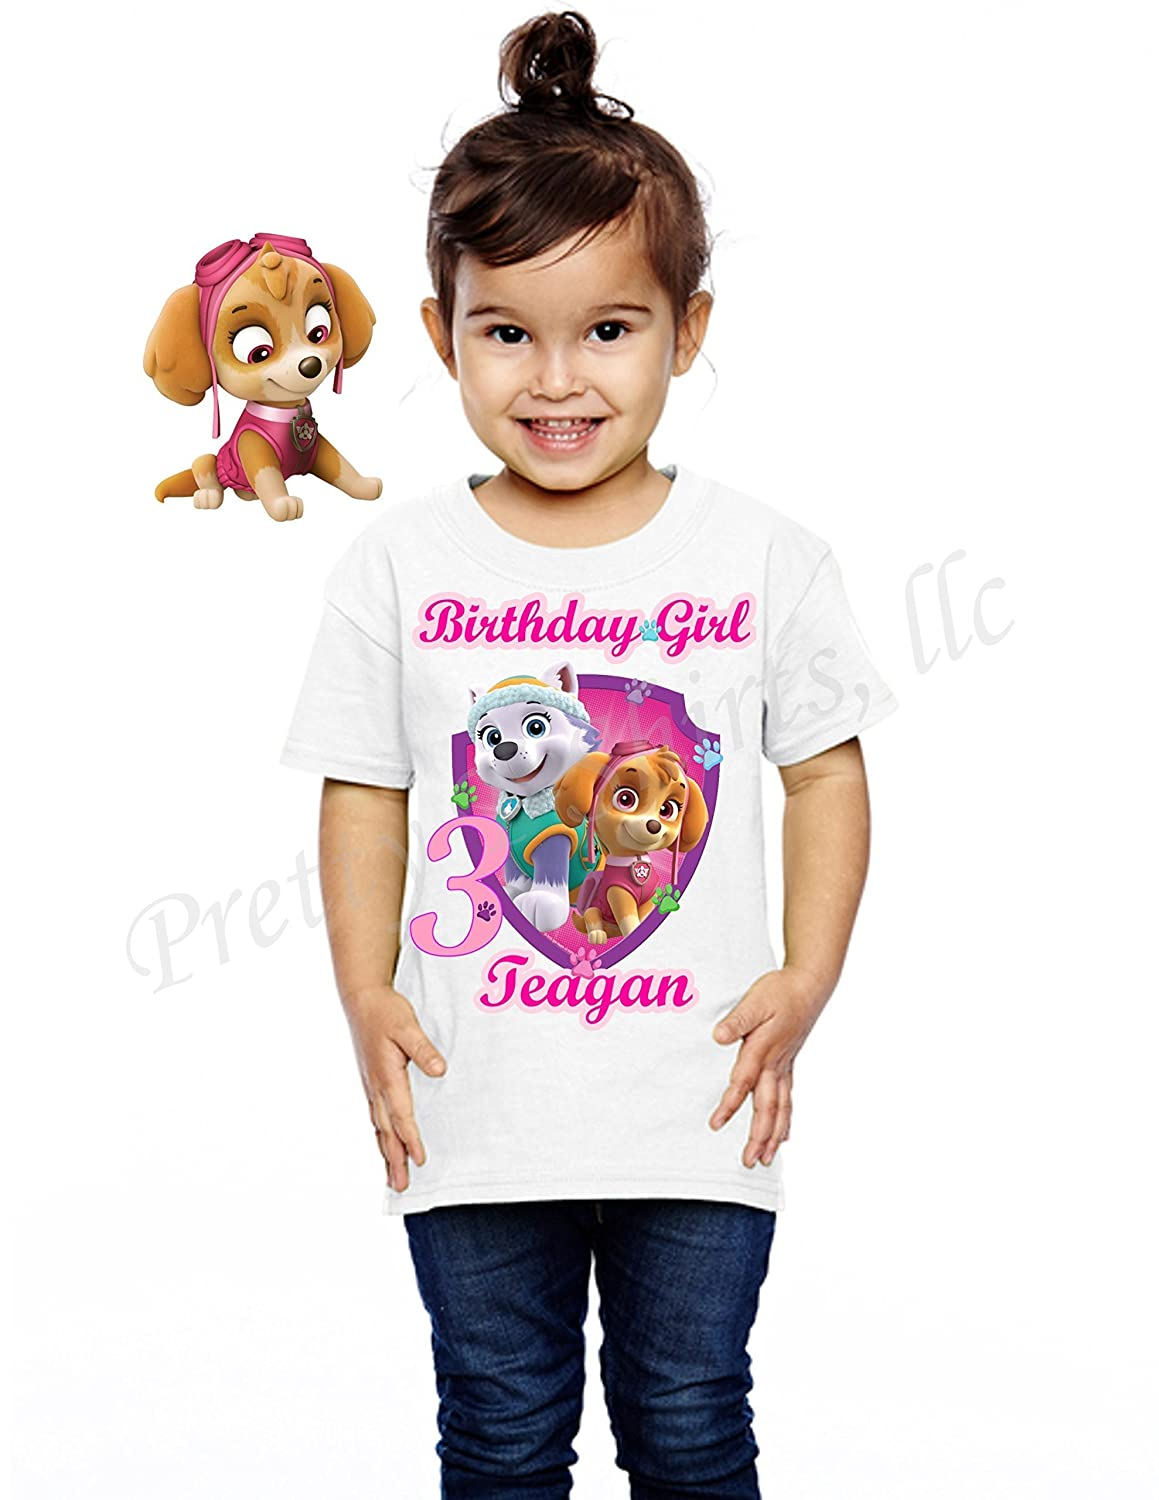 FREE SHIPPING, Girl Paw Patrol Birthday Shirt, Add ANY name & ANY age, Skye & Everest Birthday Shirt, Birthday Shirt Party Favor, Skye, Everest, Paw Patrol Birthday Shirts Girl, VISIT OUR SHOP!!